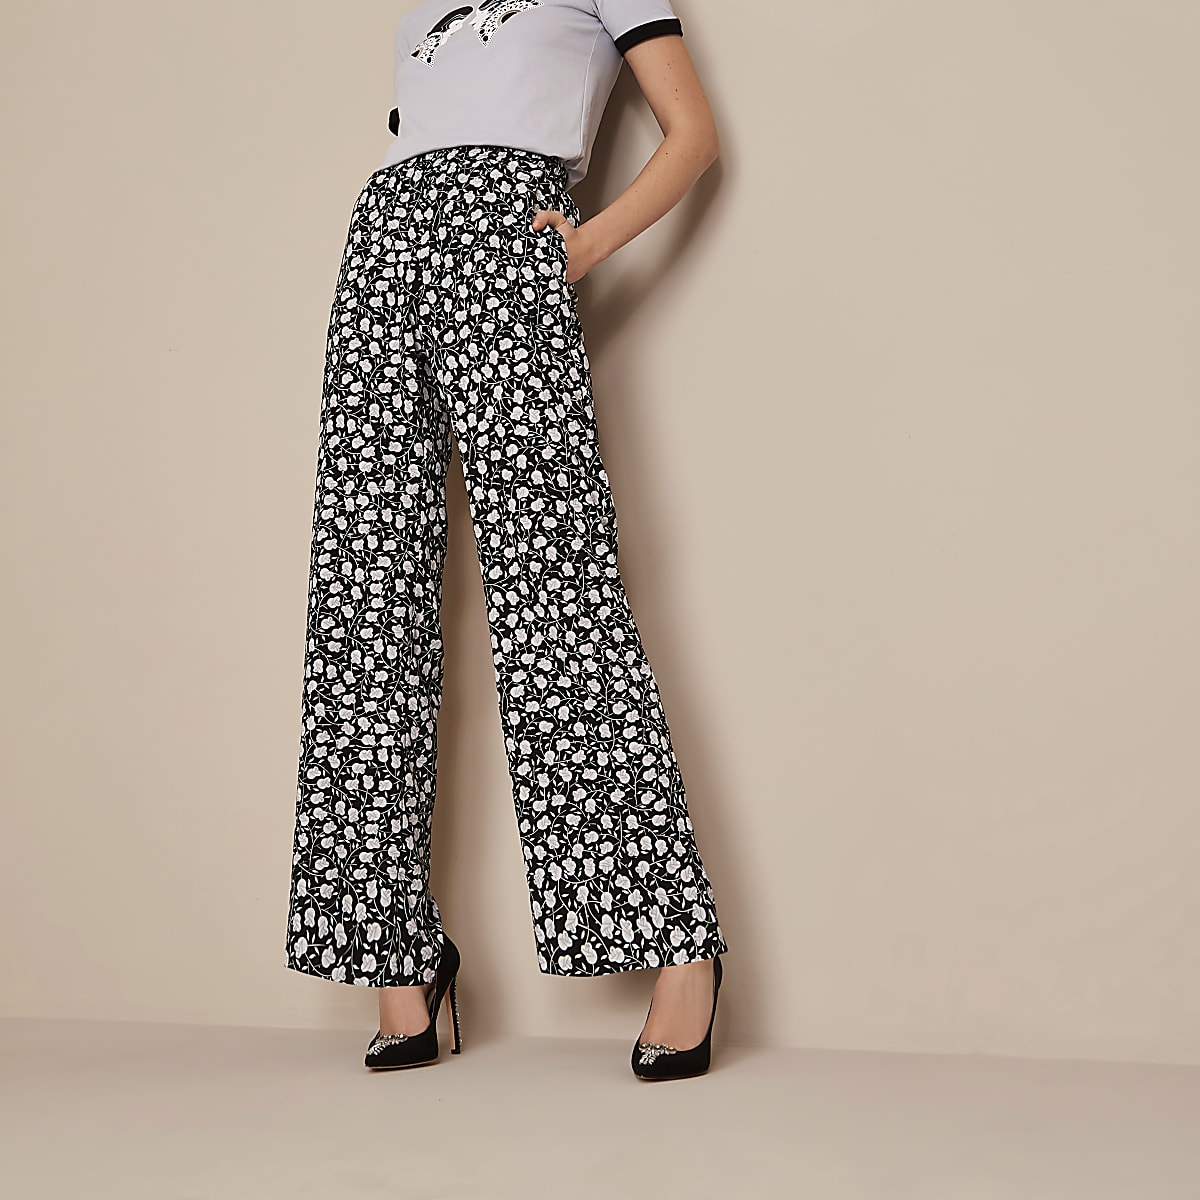 Black Holly Fulton floral wide leg trousers